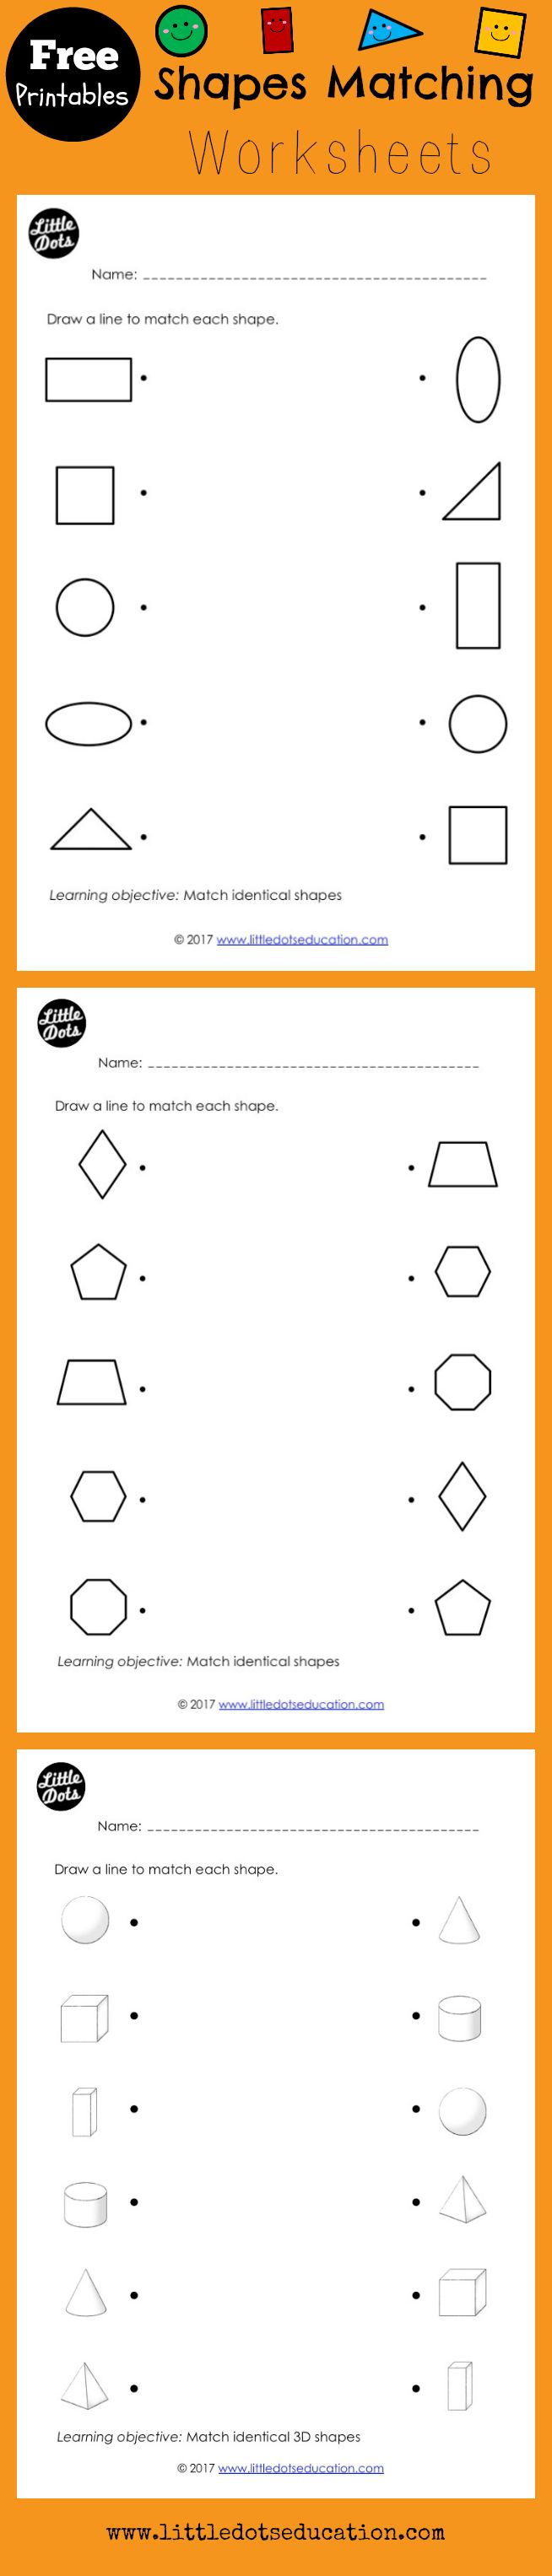 Free shapes matching worksheets for preschool, pre-k or kindergarten class. Scroll down to the bottom of the post to find the link for the free shapes matching printable.